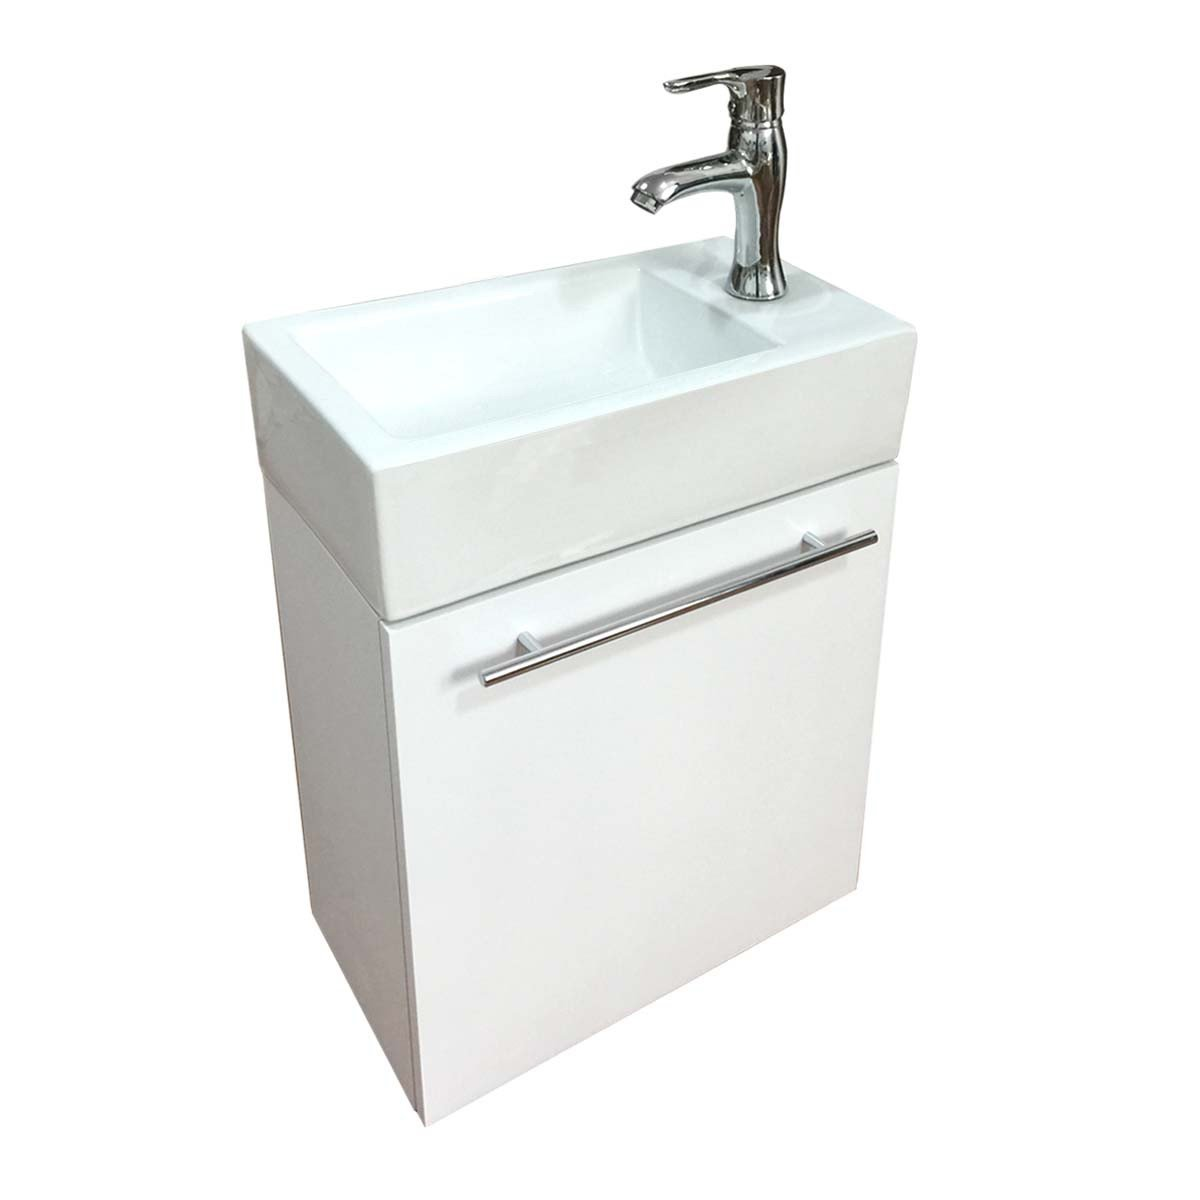 Bathroom Sink White Vanity With Towel Bar, Faucet And Drain Wall Mount Storage | Renovator's Supply